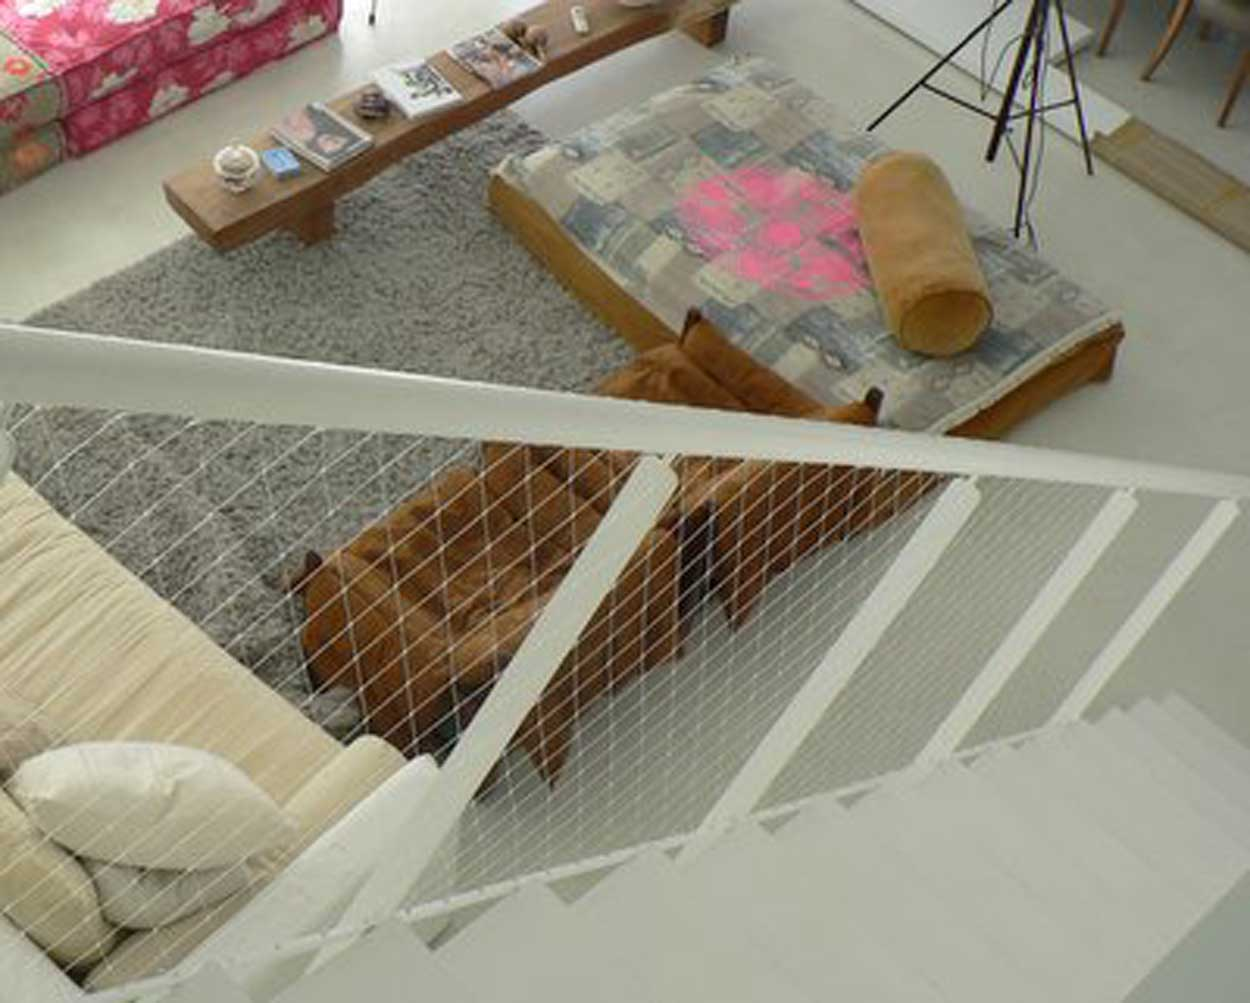 Delightful ... Safety Net For Stairs ...